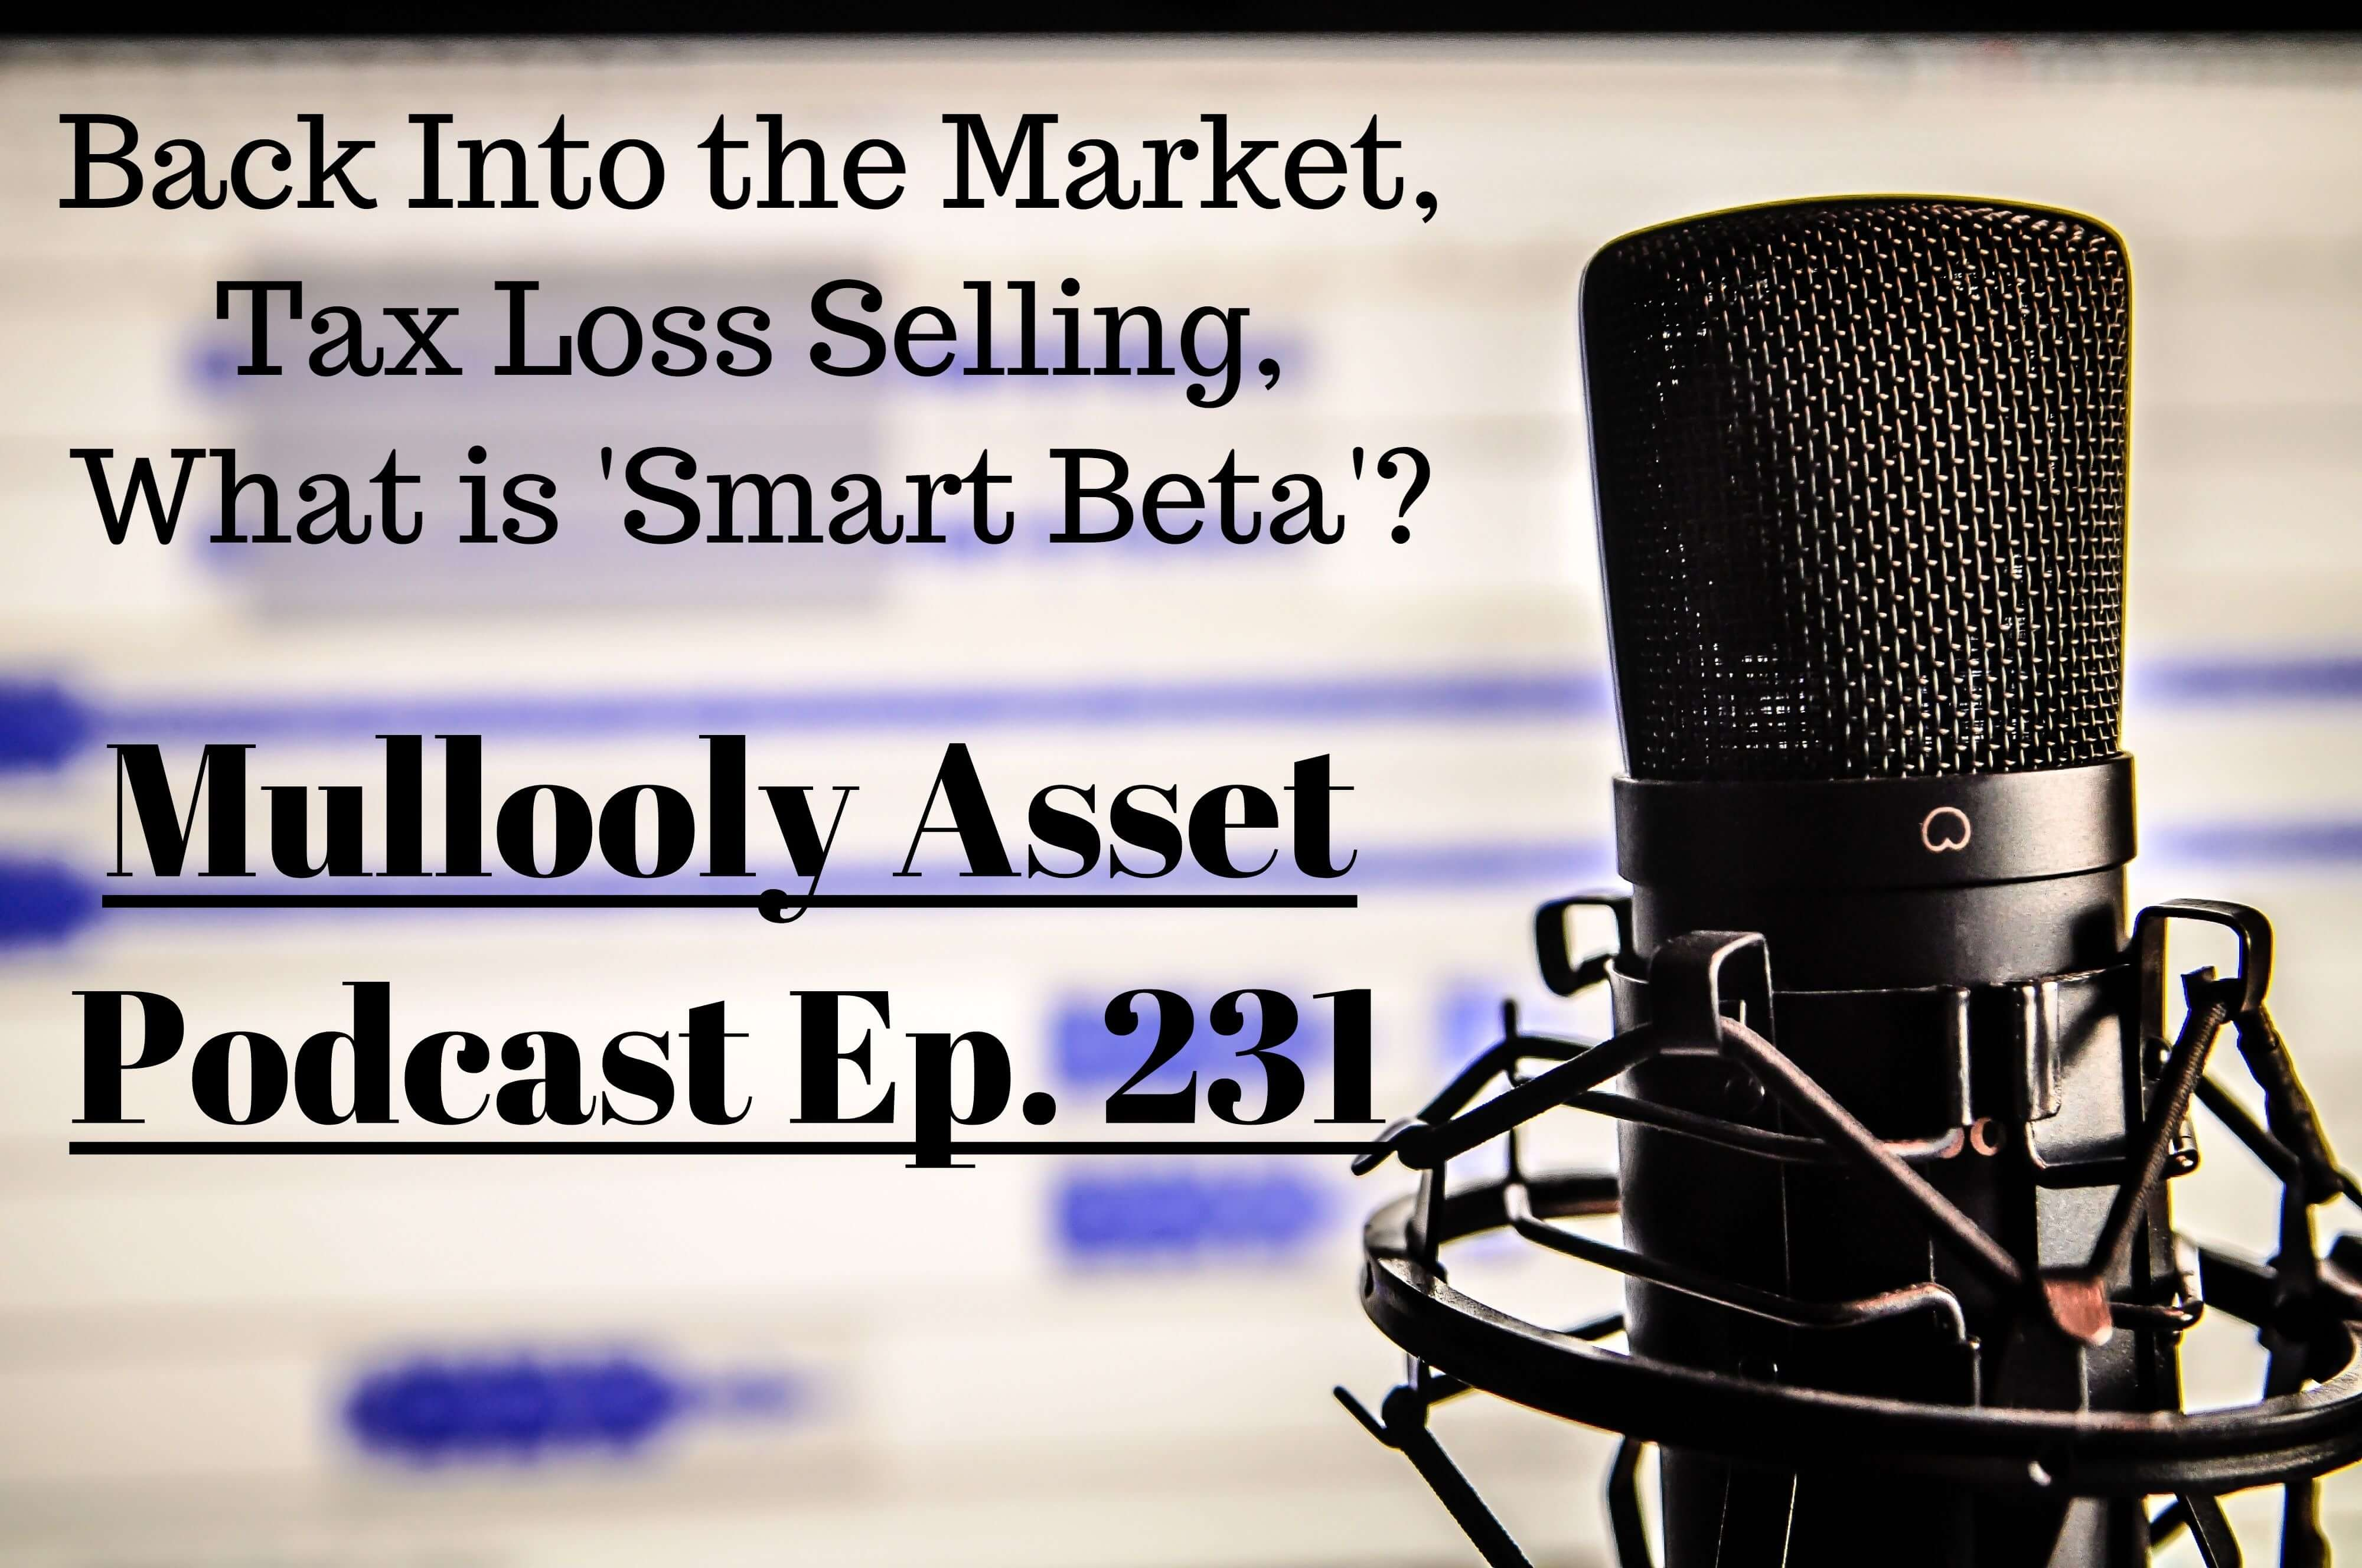 Ep. 231: Back Into the Market, Tax Loss Selling, & What is Smart Beta?